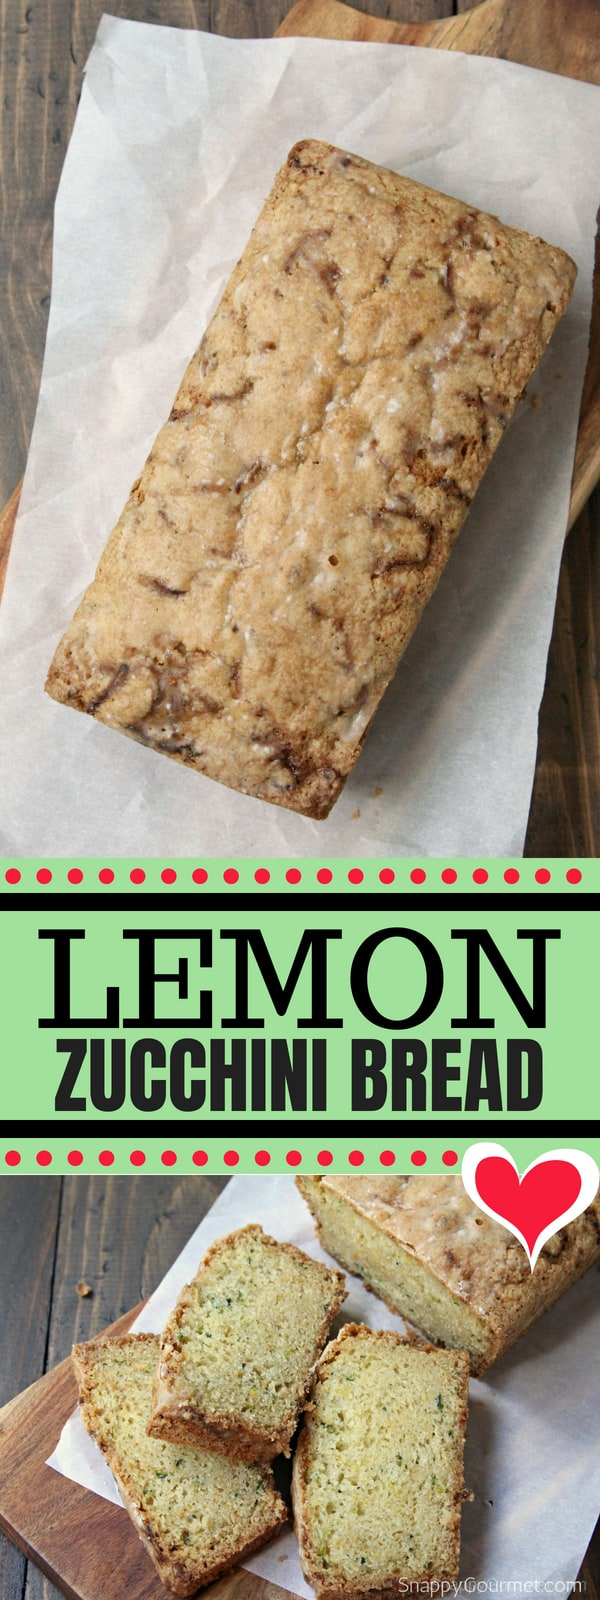 Lemon Zucchini Bread - easy zucchini bread with with fresh lemon and a lemon glaze